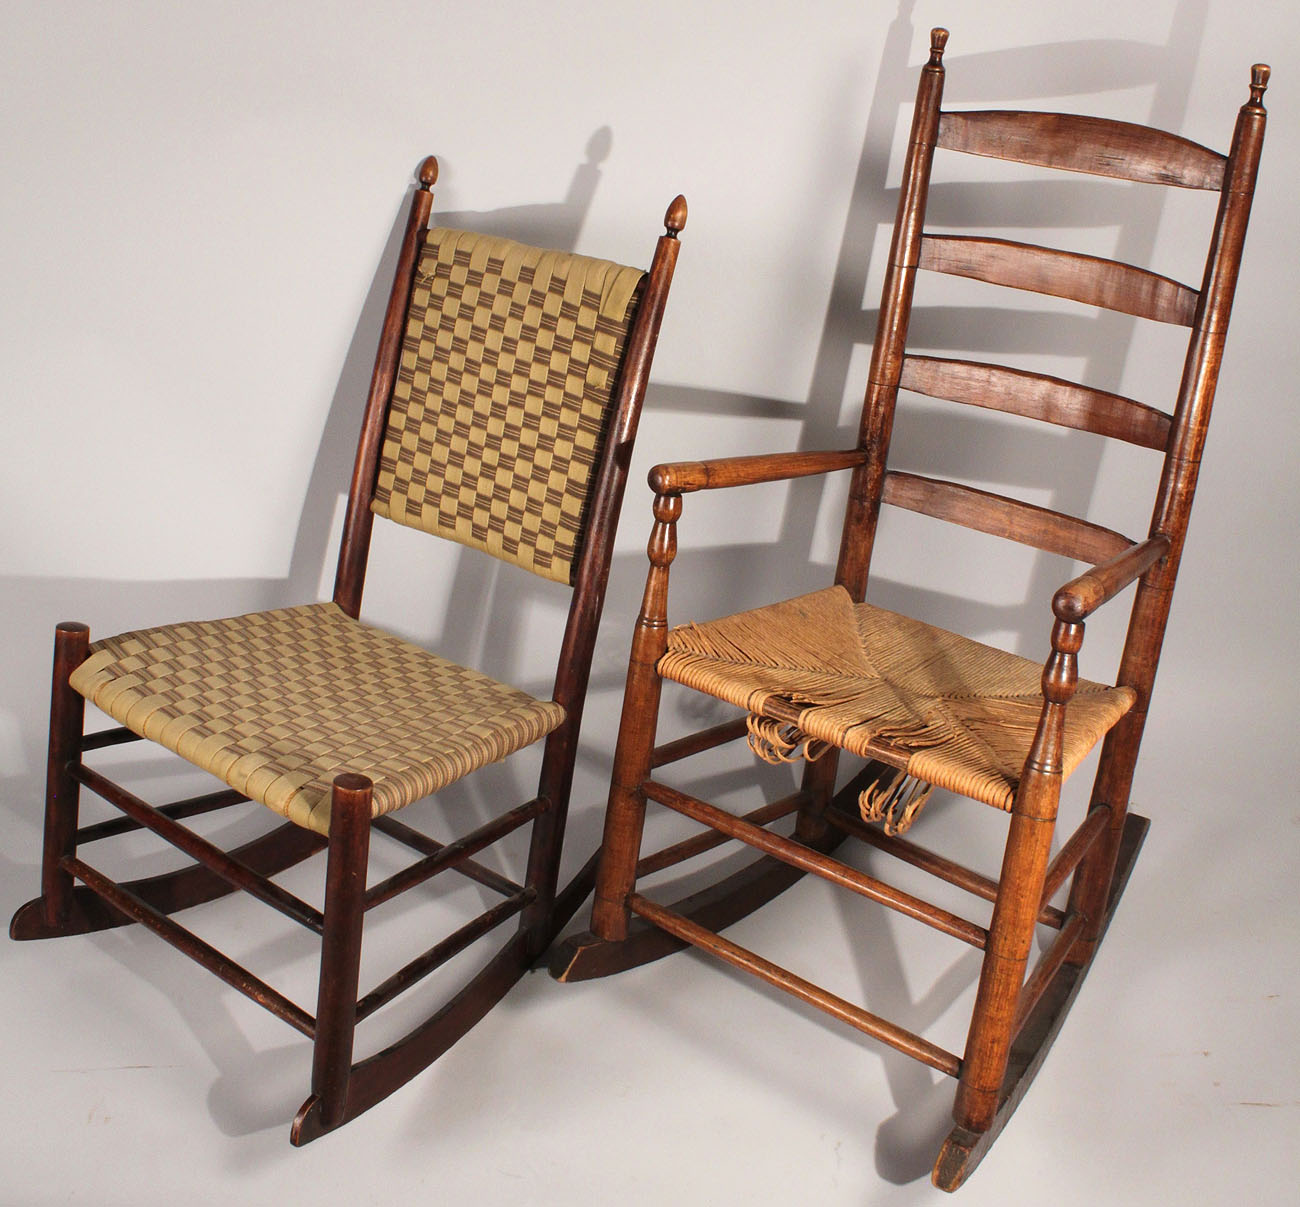 2 rocking chairs instrumental albee baby high chair lot 449 shaker and tennessee